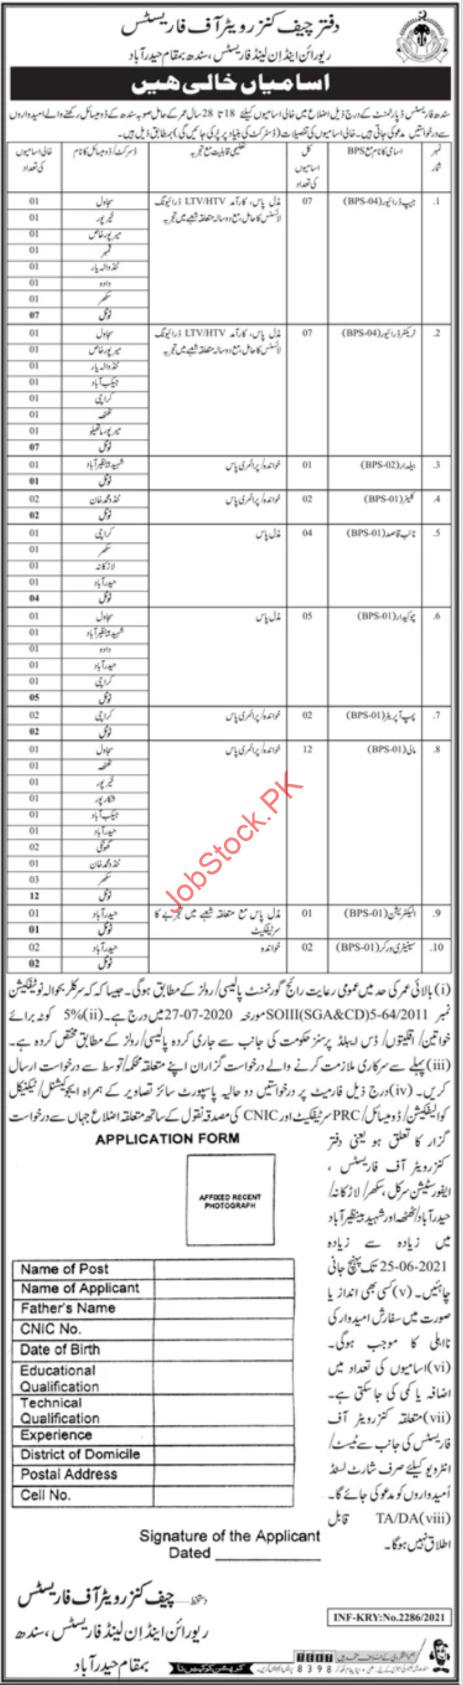 Sindh Forest Department Jobs 2021 Downloadadvertisement And Application Form